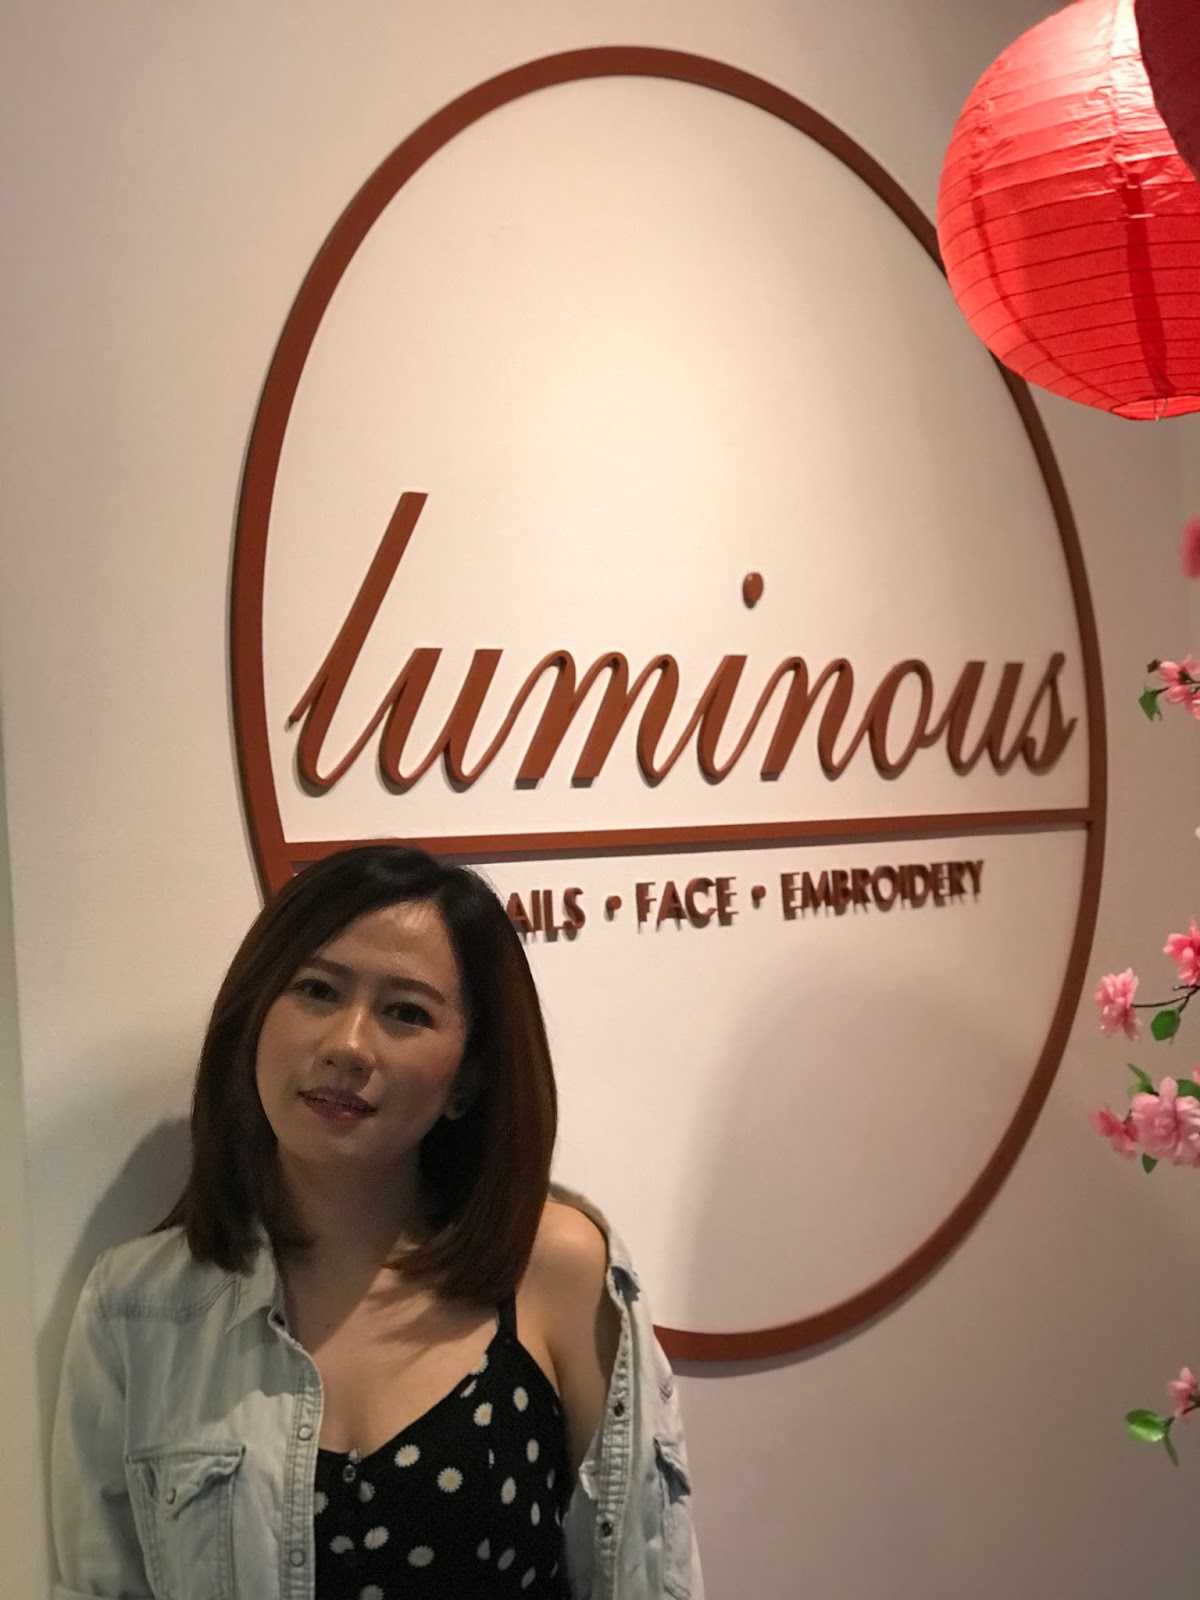 [Beauty Review] Top Notch Gel Manicure Service at Luminous Beauty Parlour, Desa Park City